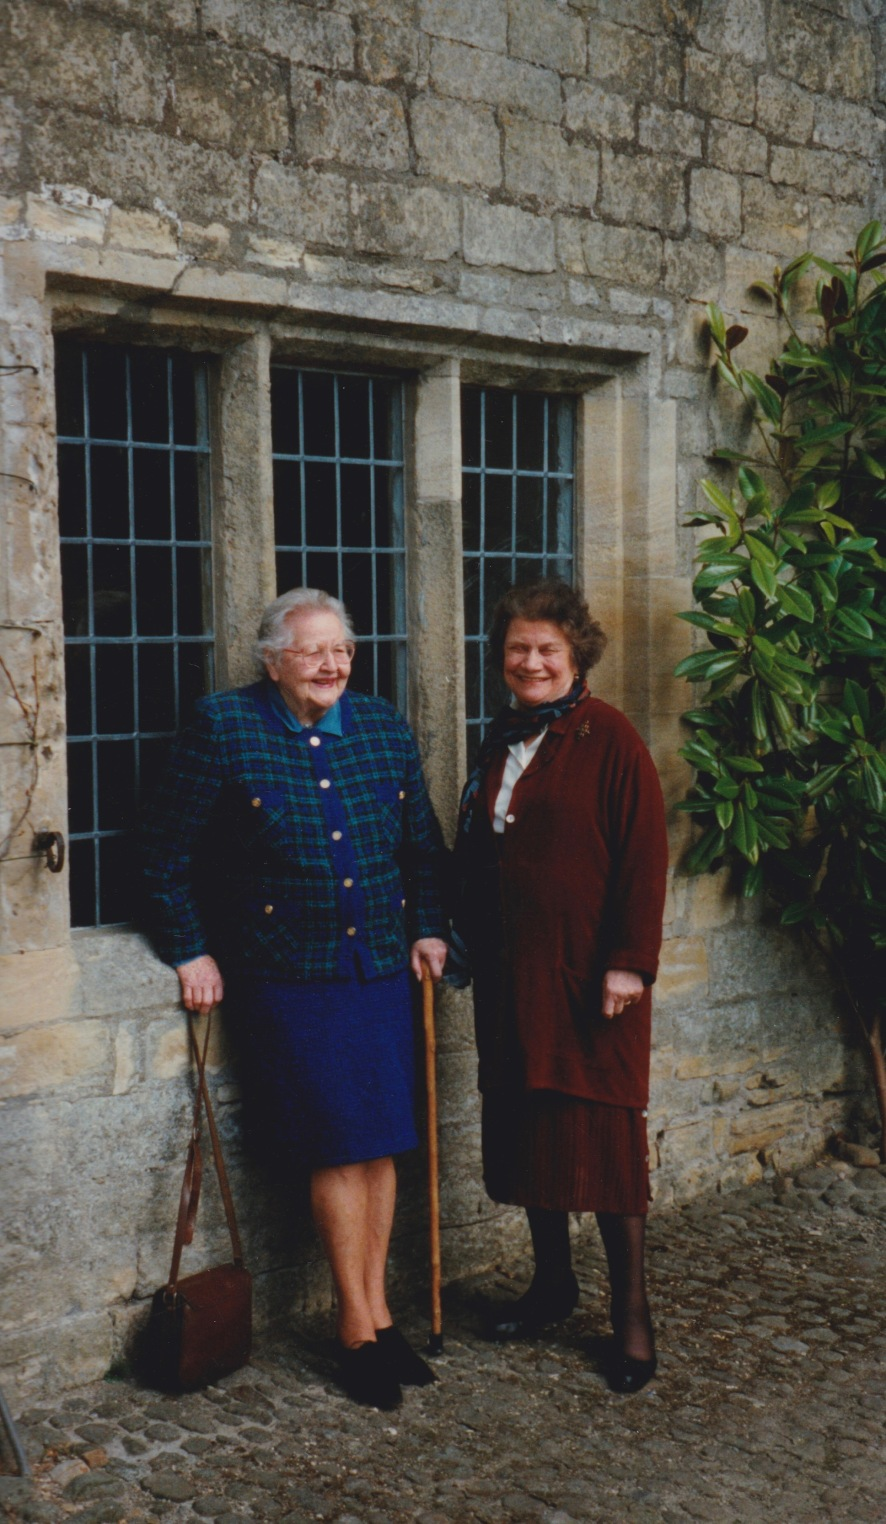 Coote and Freda at Sledmere, 1993.jpg